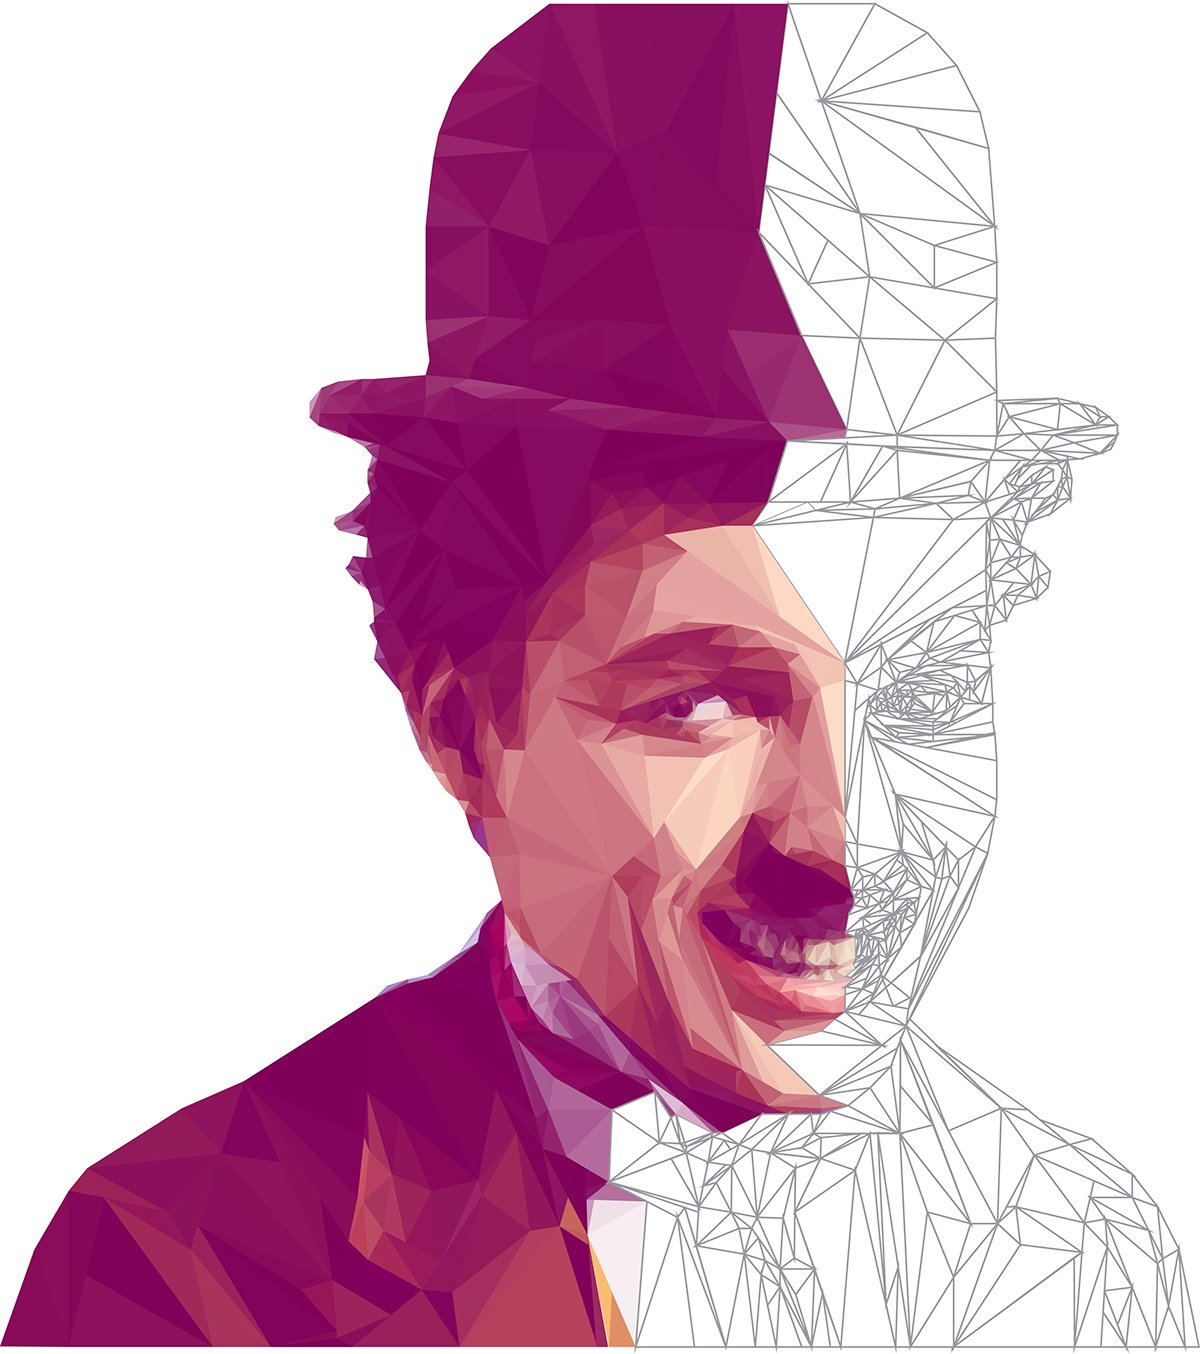 Charles Chaplin - Low Poly High Poly Portrait